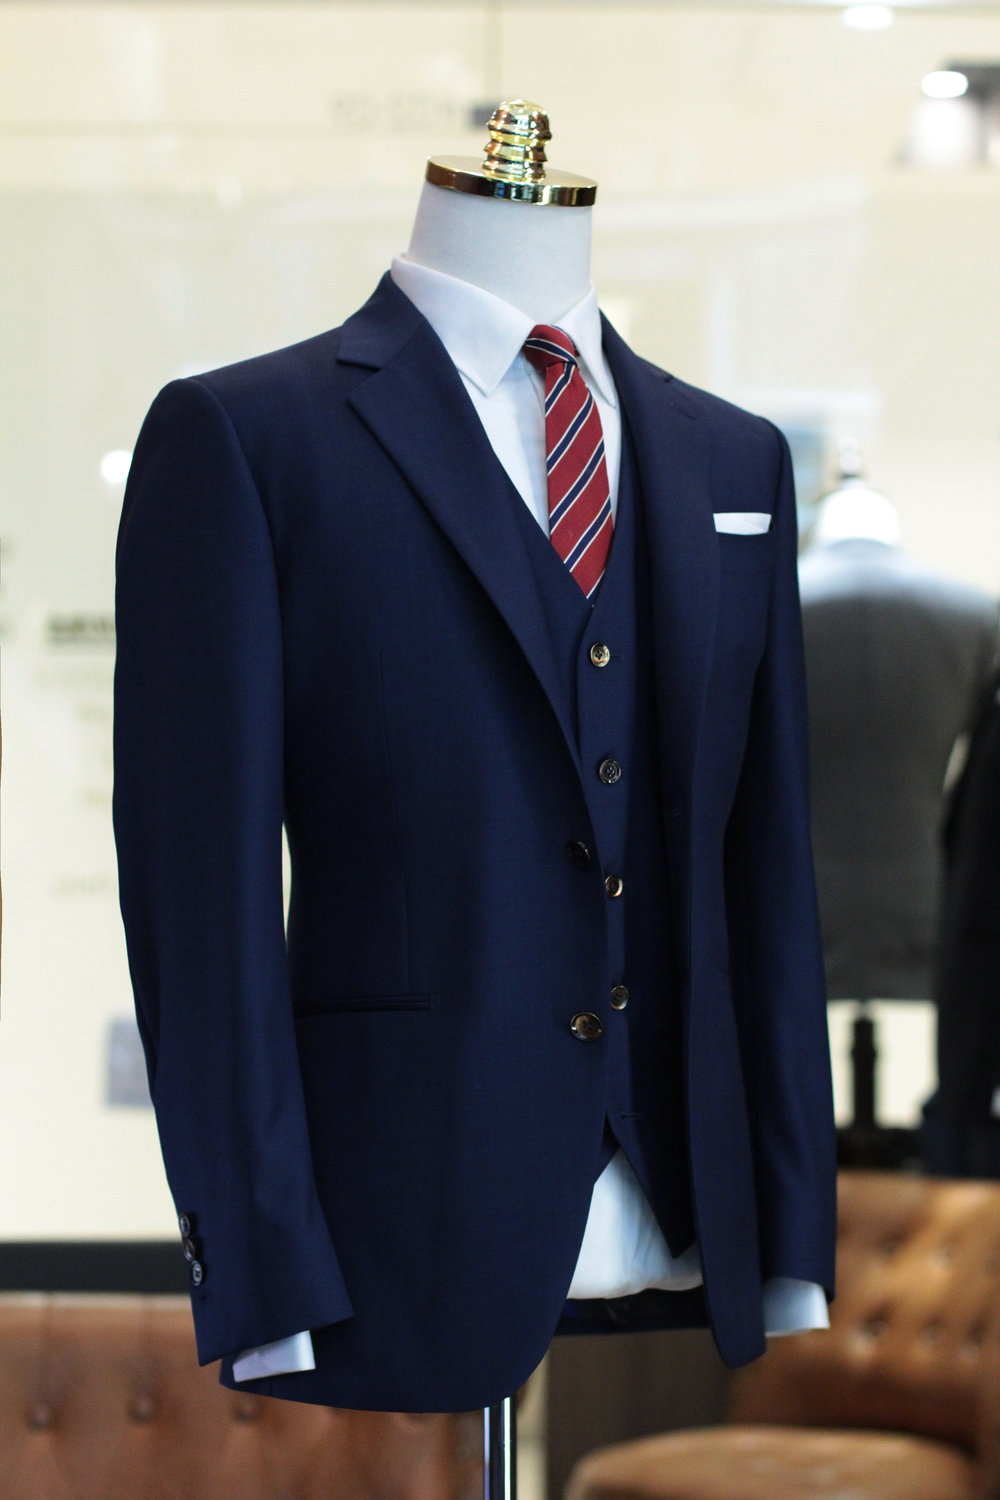 Hallyu Star | Tailor Made Suits Singapore Tailor Suits | Stylbiella side.JPG.JPG